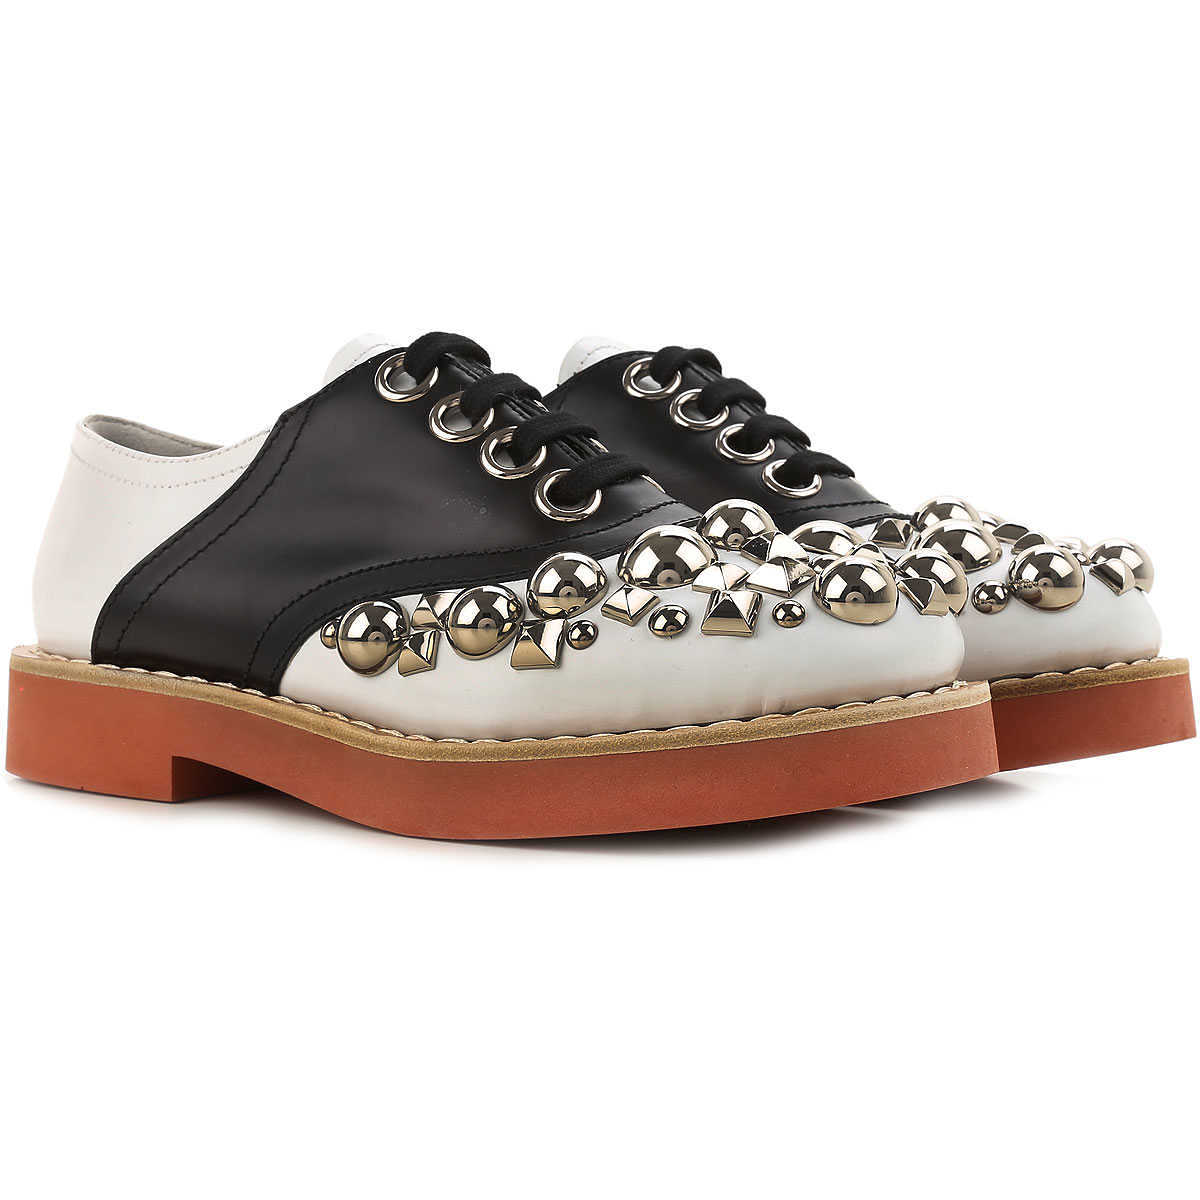 Miu Miu Brogues Oxford Shoes On Sale in Outlet White - GOOFASH